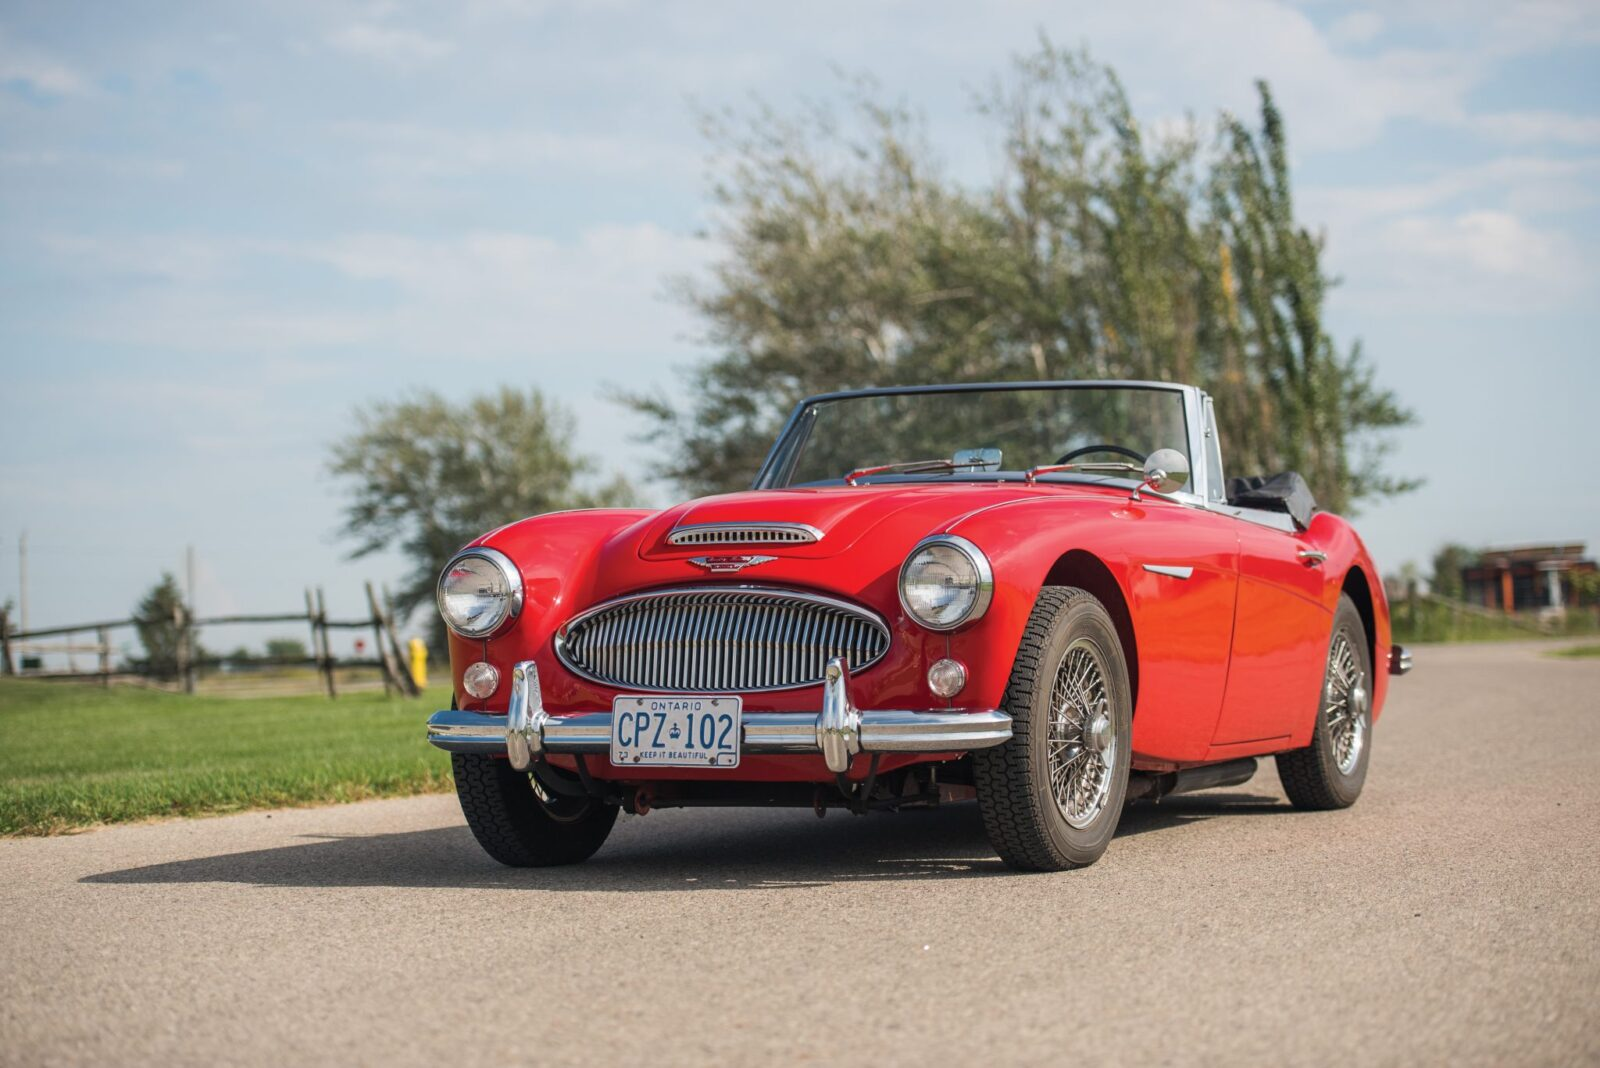 Austin Healey 3000 Mk III 1600x1068 - The Essential Buying Guide - Austin-Healey 3000